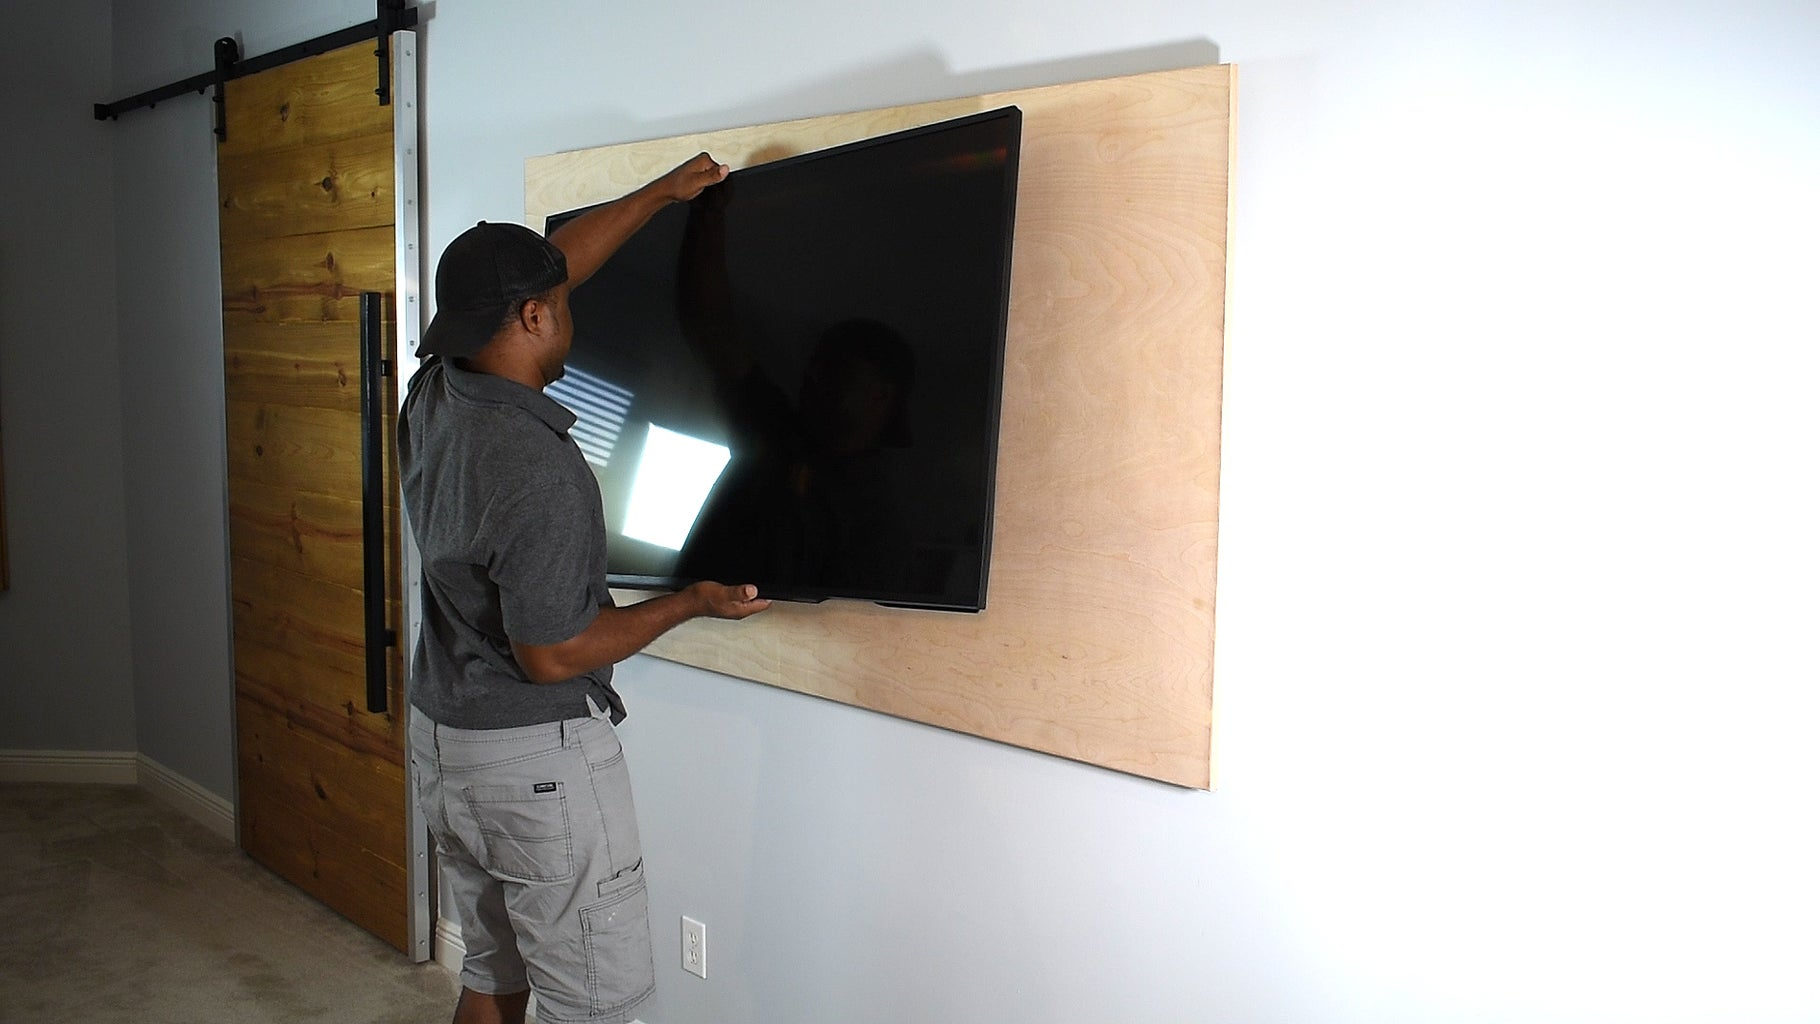 Mounting the TV